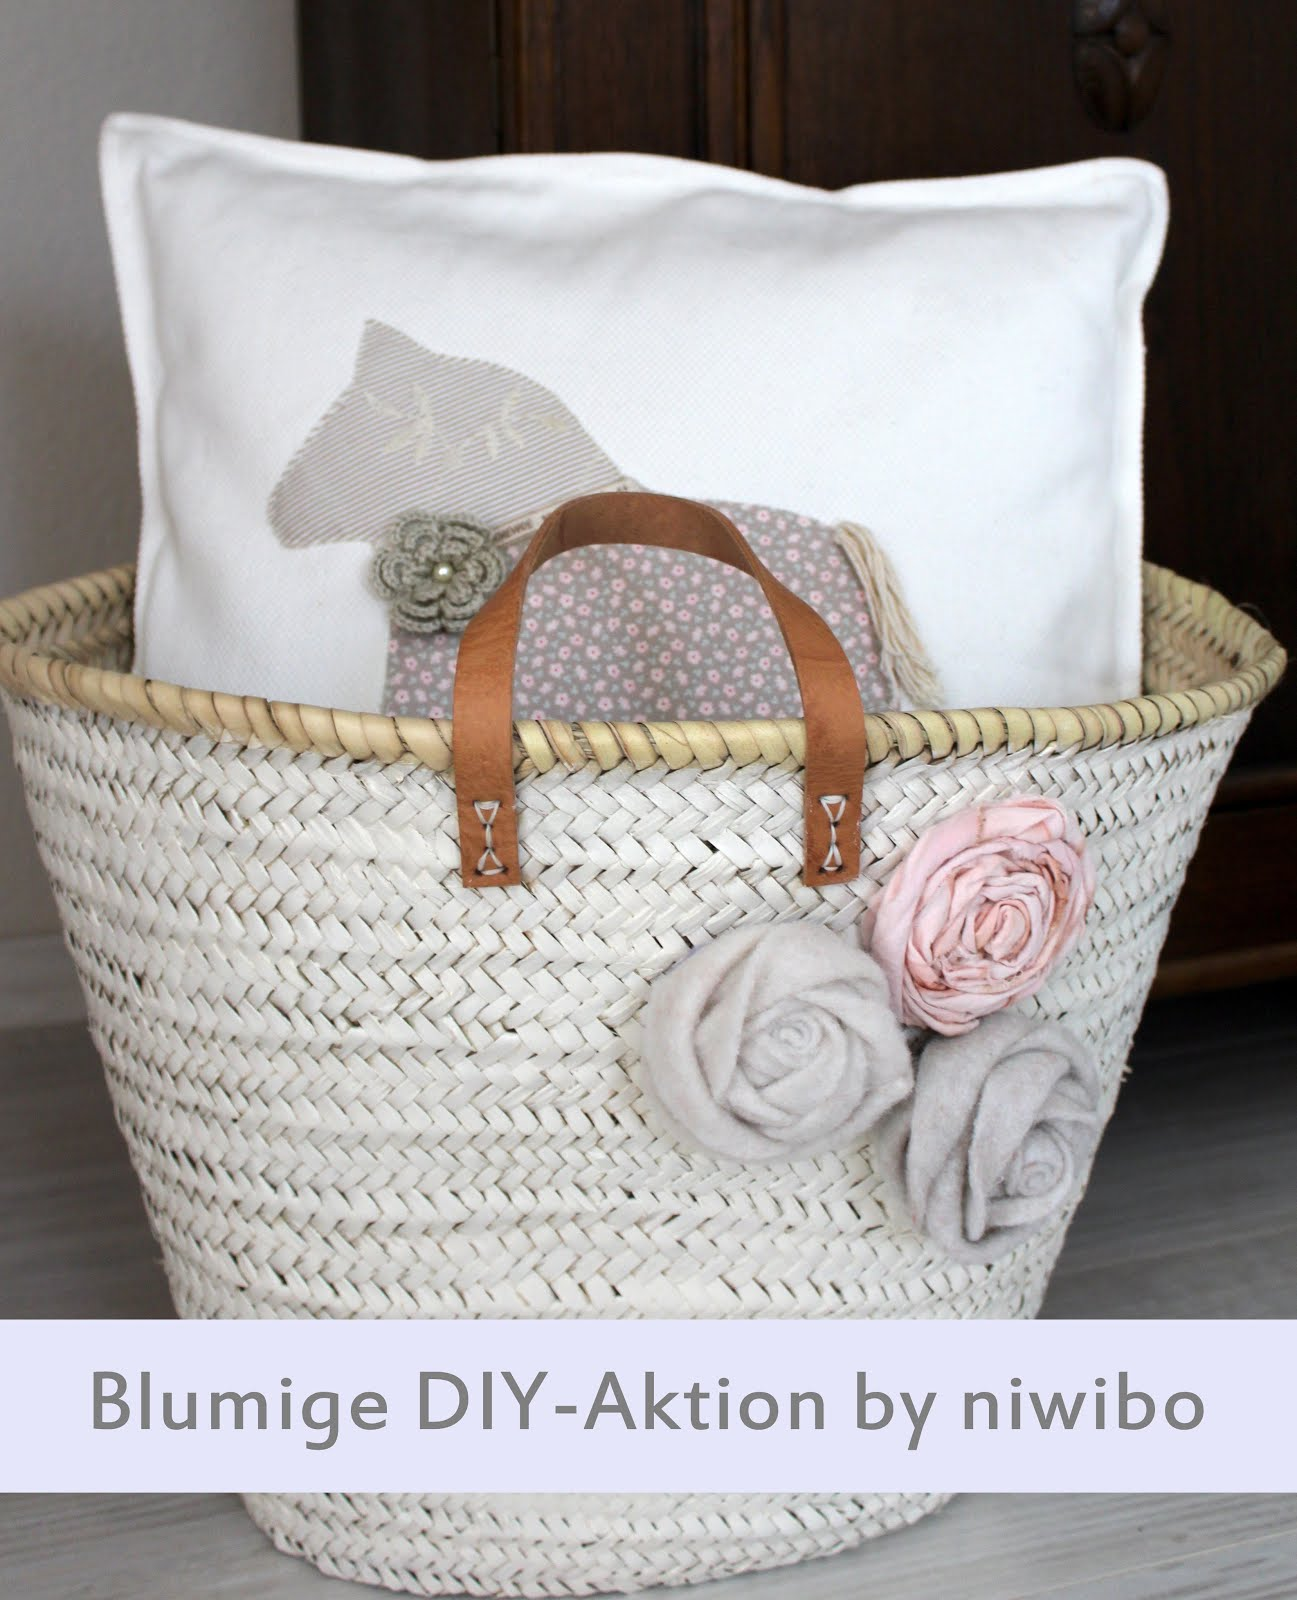 Blumige DIY-Aktion